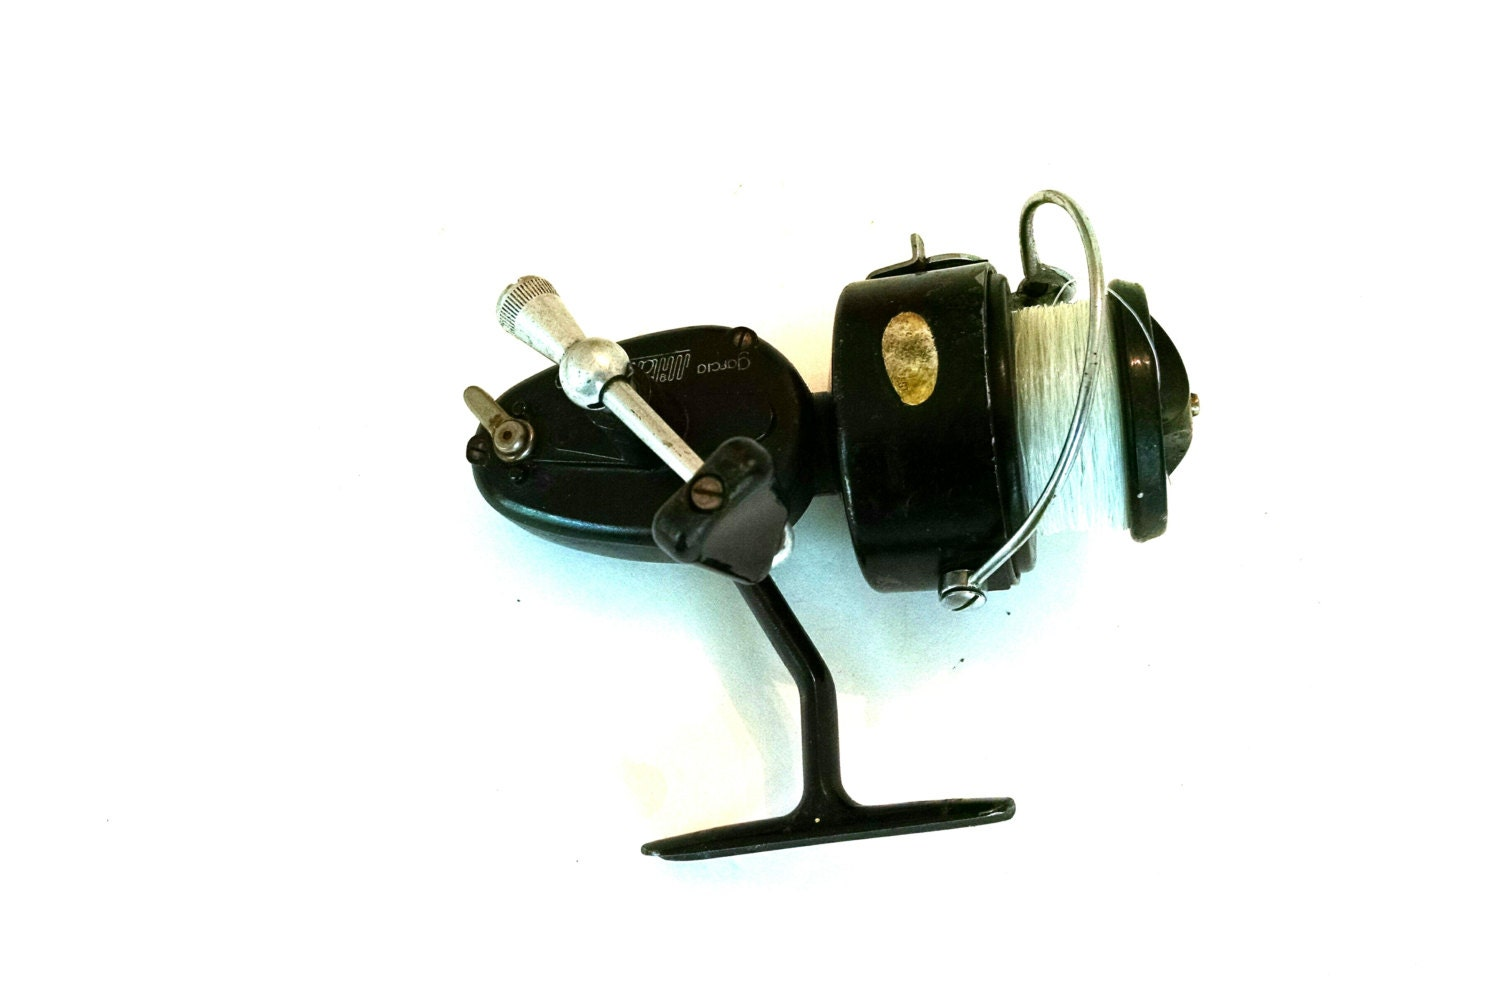 Vintage fishing reel garcia mitchell 300 reel by for Mitchell 300 fishing reel